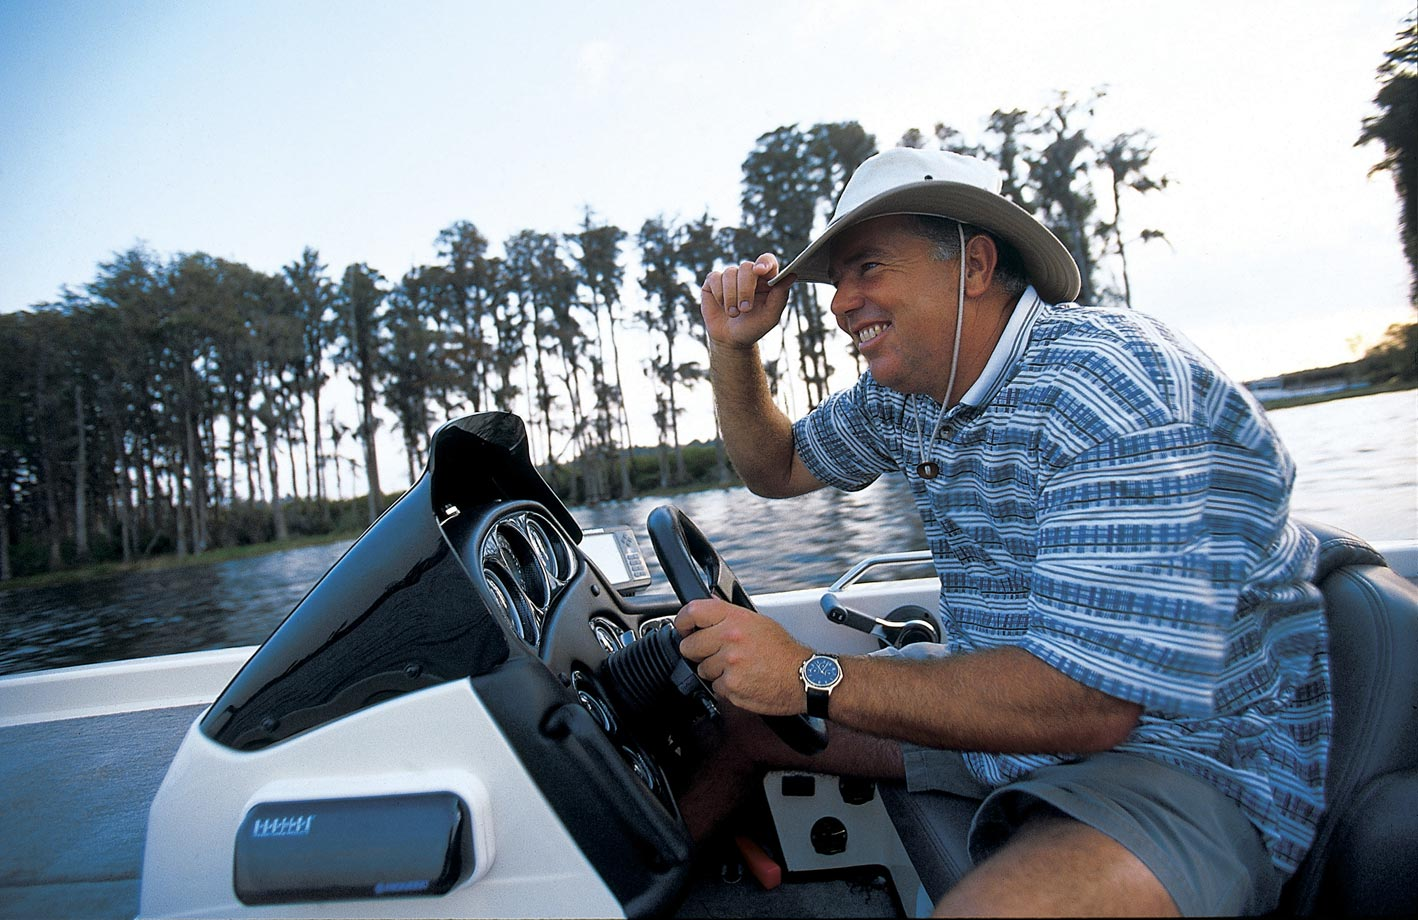 The golfer drives his boat near Orlando in 1998, the best year of his PGA career.